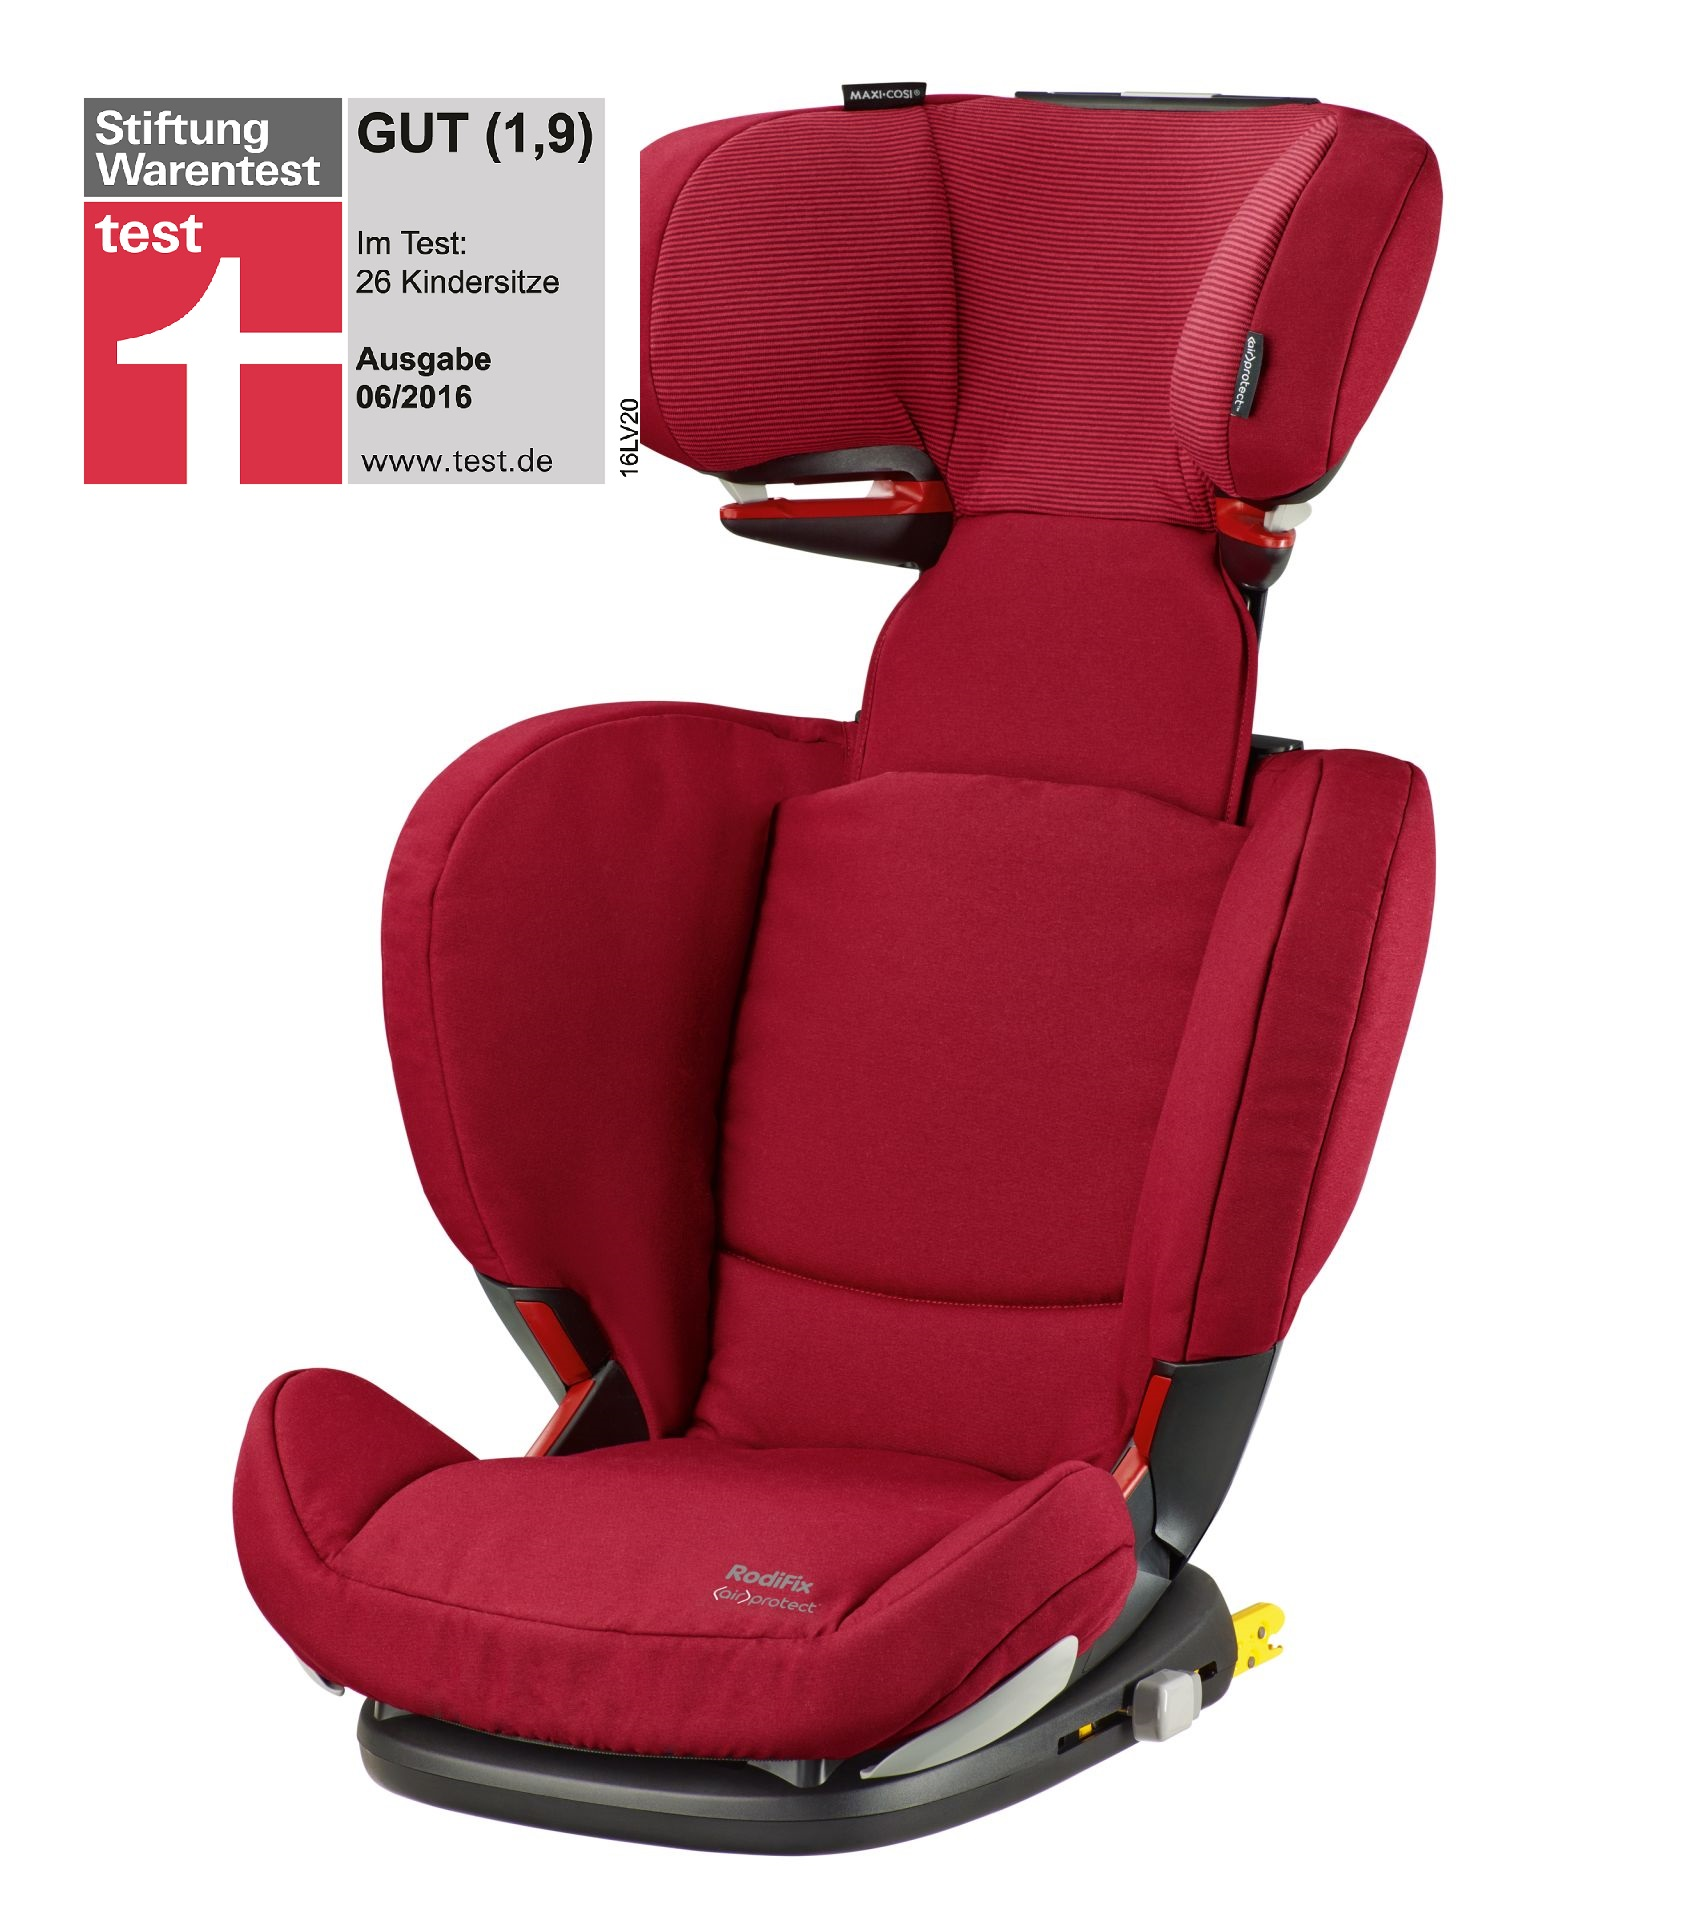 maxi cosi safety seat rodifix airprotect buy at. Black Bedroom Furniture Sets. Home Design Ideas